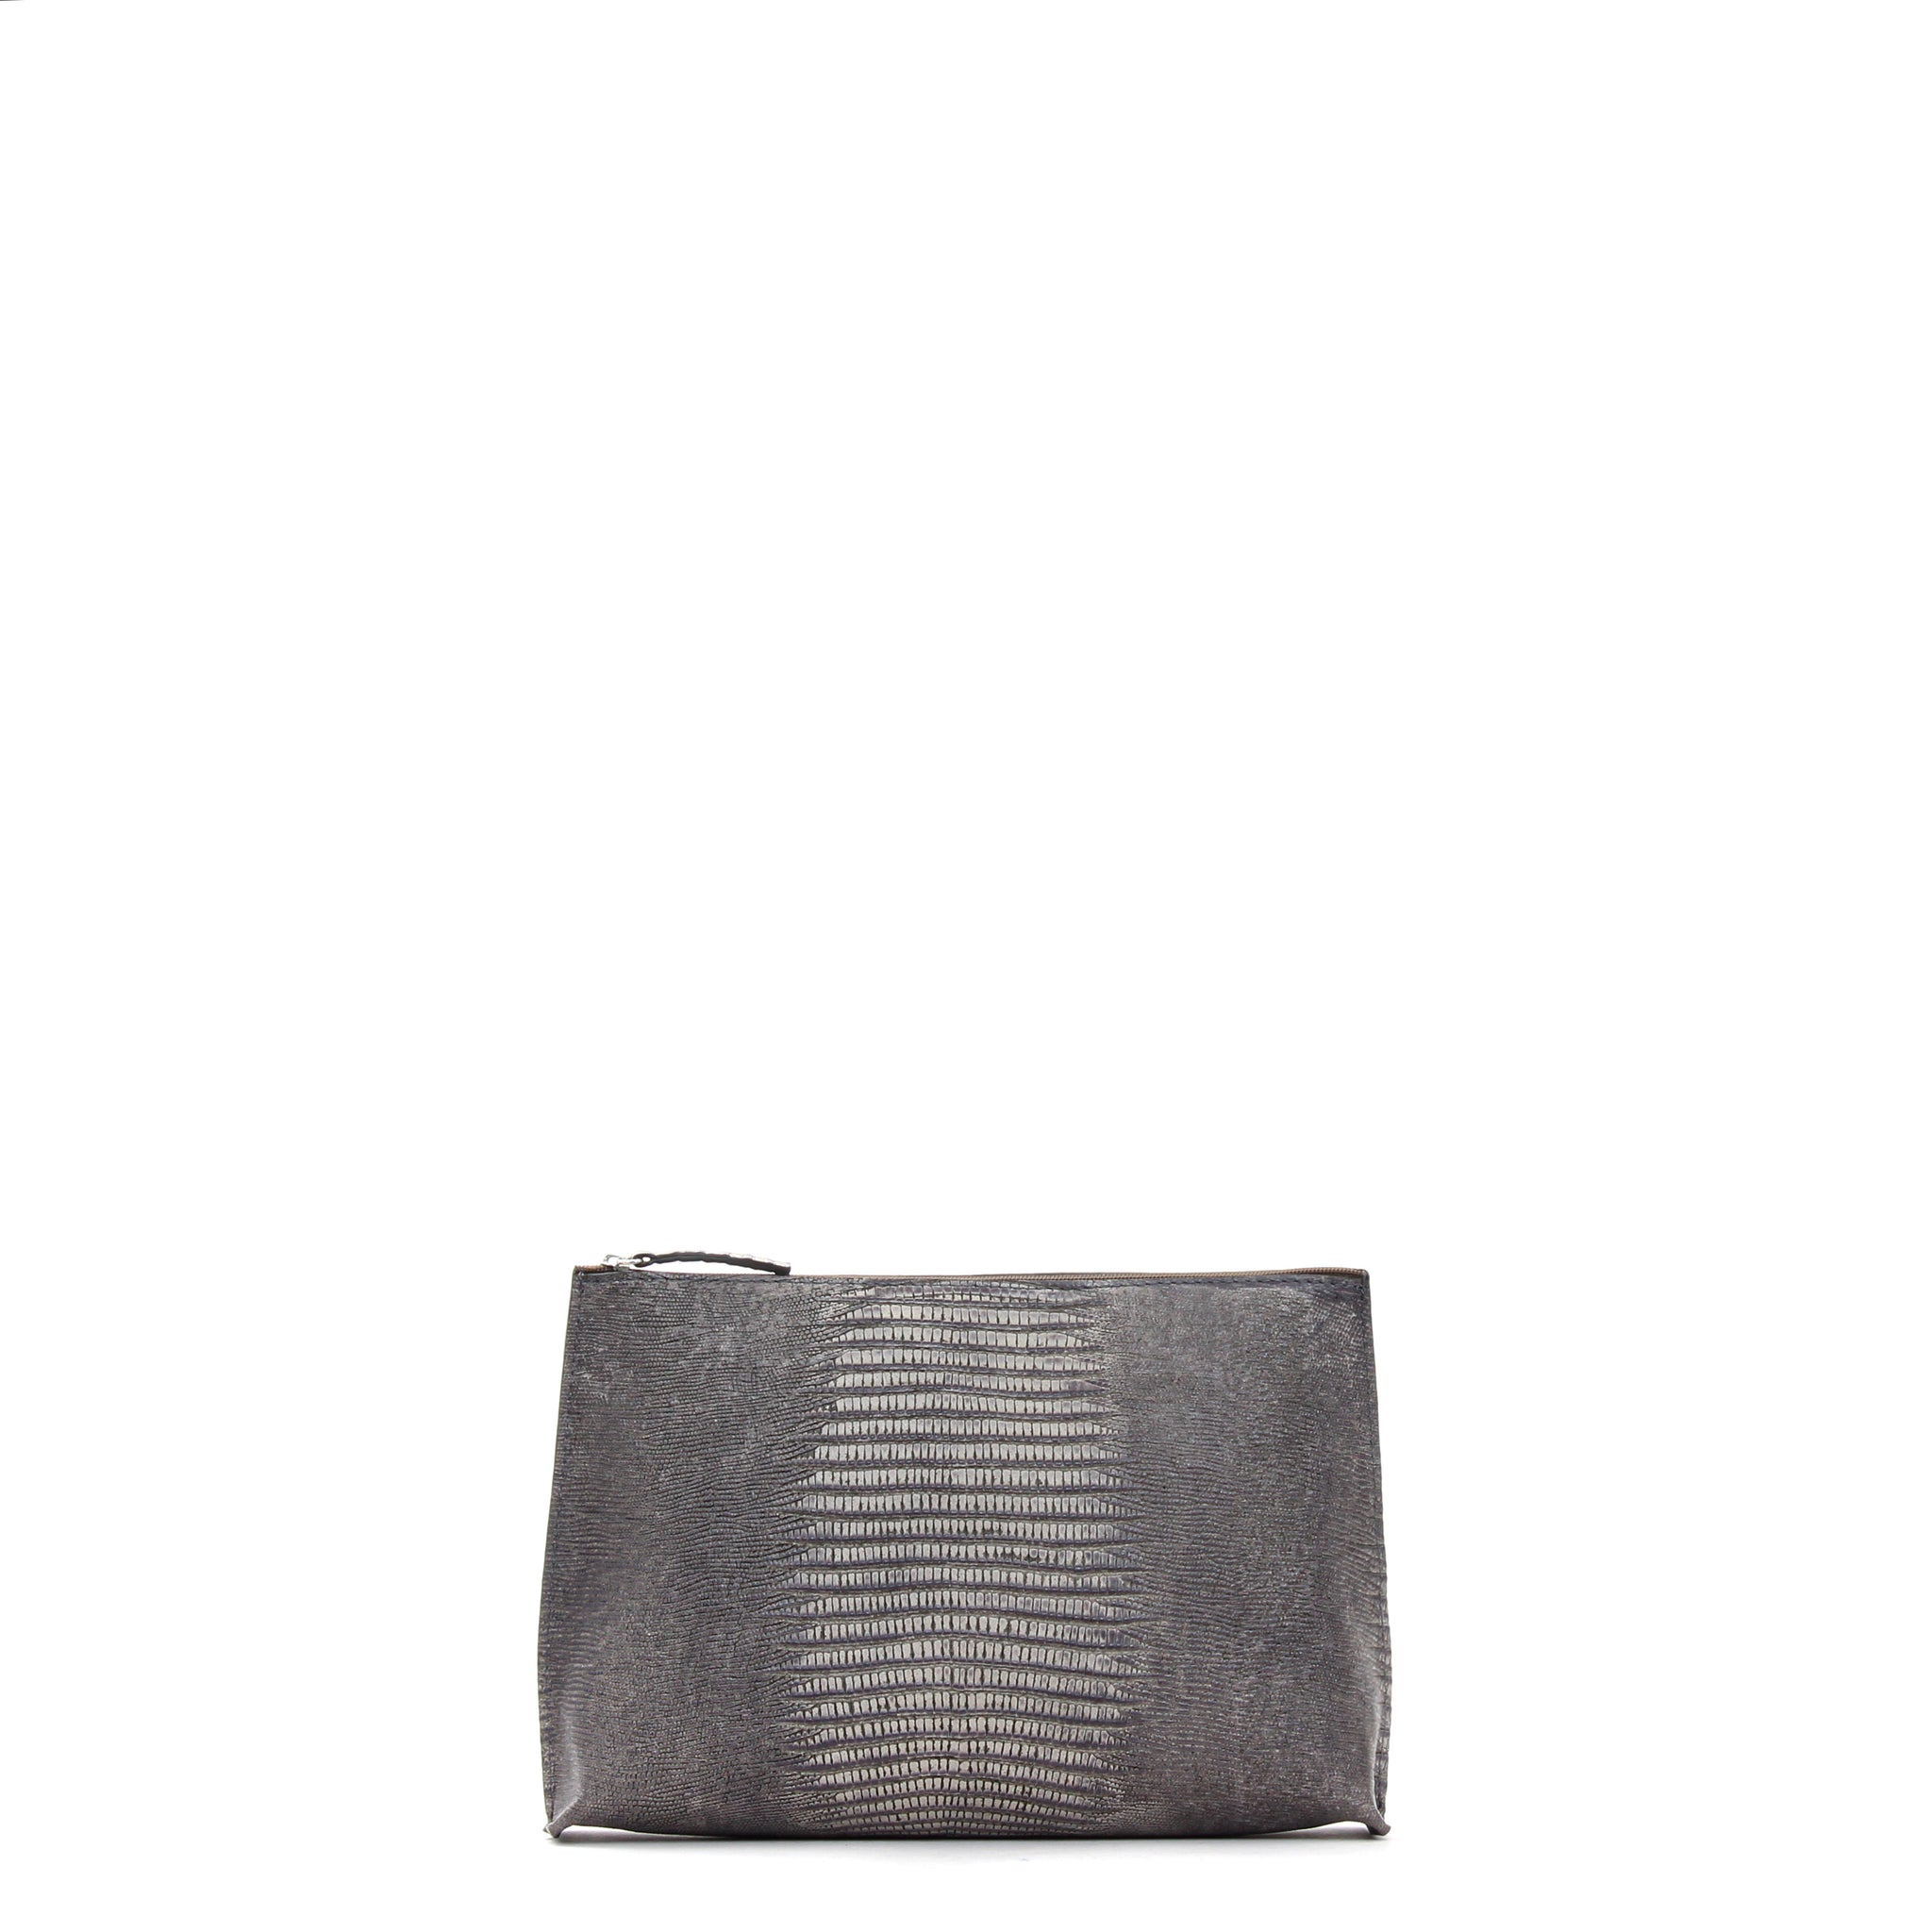 EVERYDAY POUCH GREY EMBOSSED LIZARD